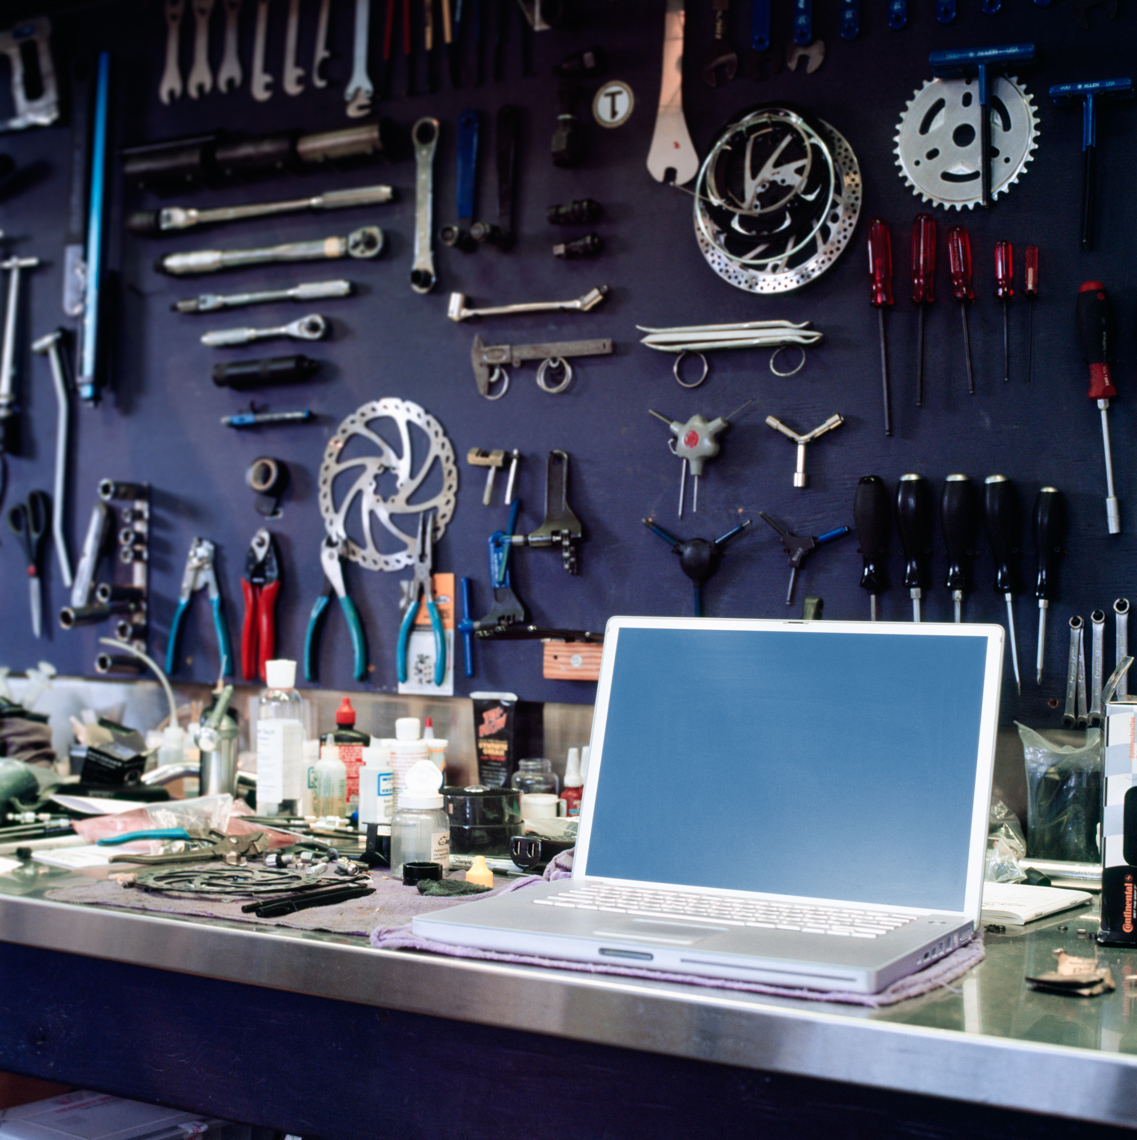 Laptop computer with blank monitor screen on workbench in bike shop. Small businesses staying organized using technology.